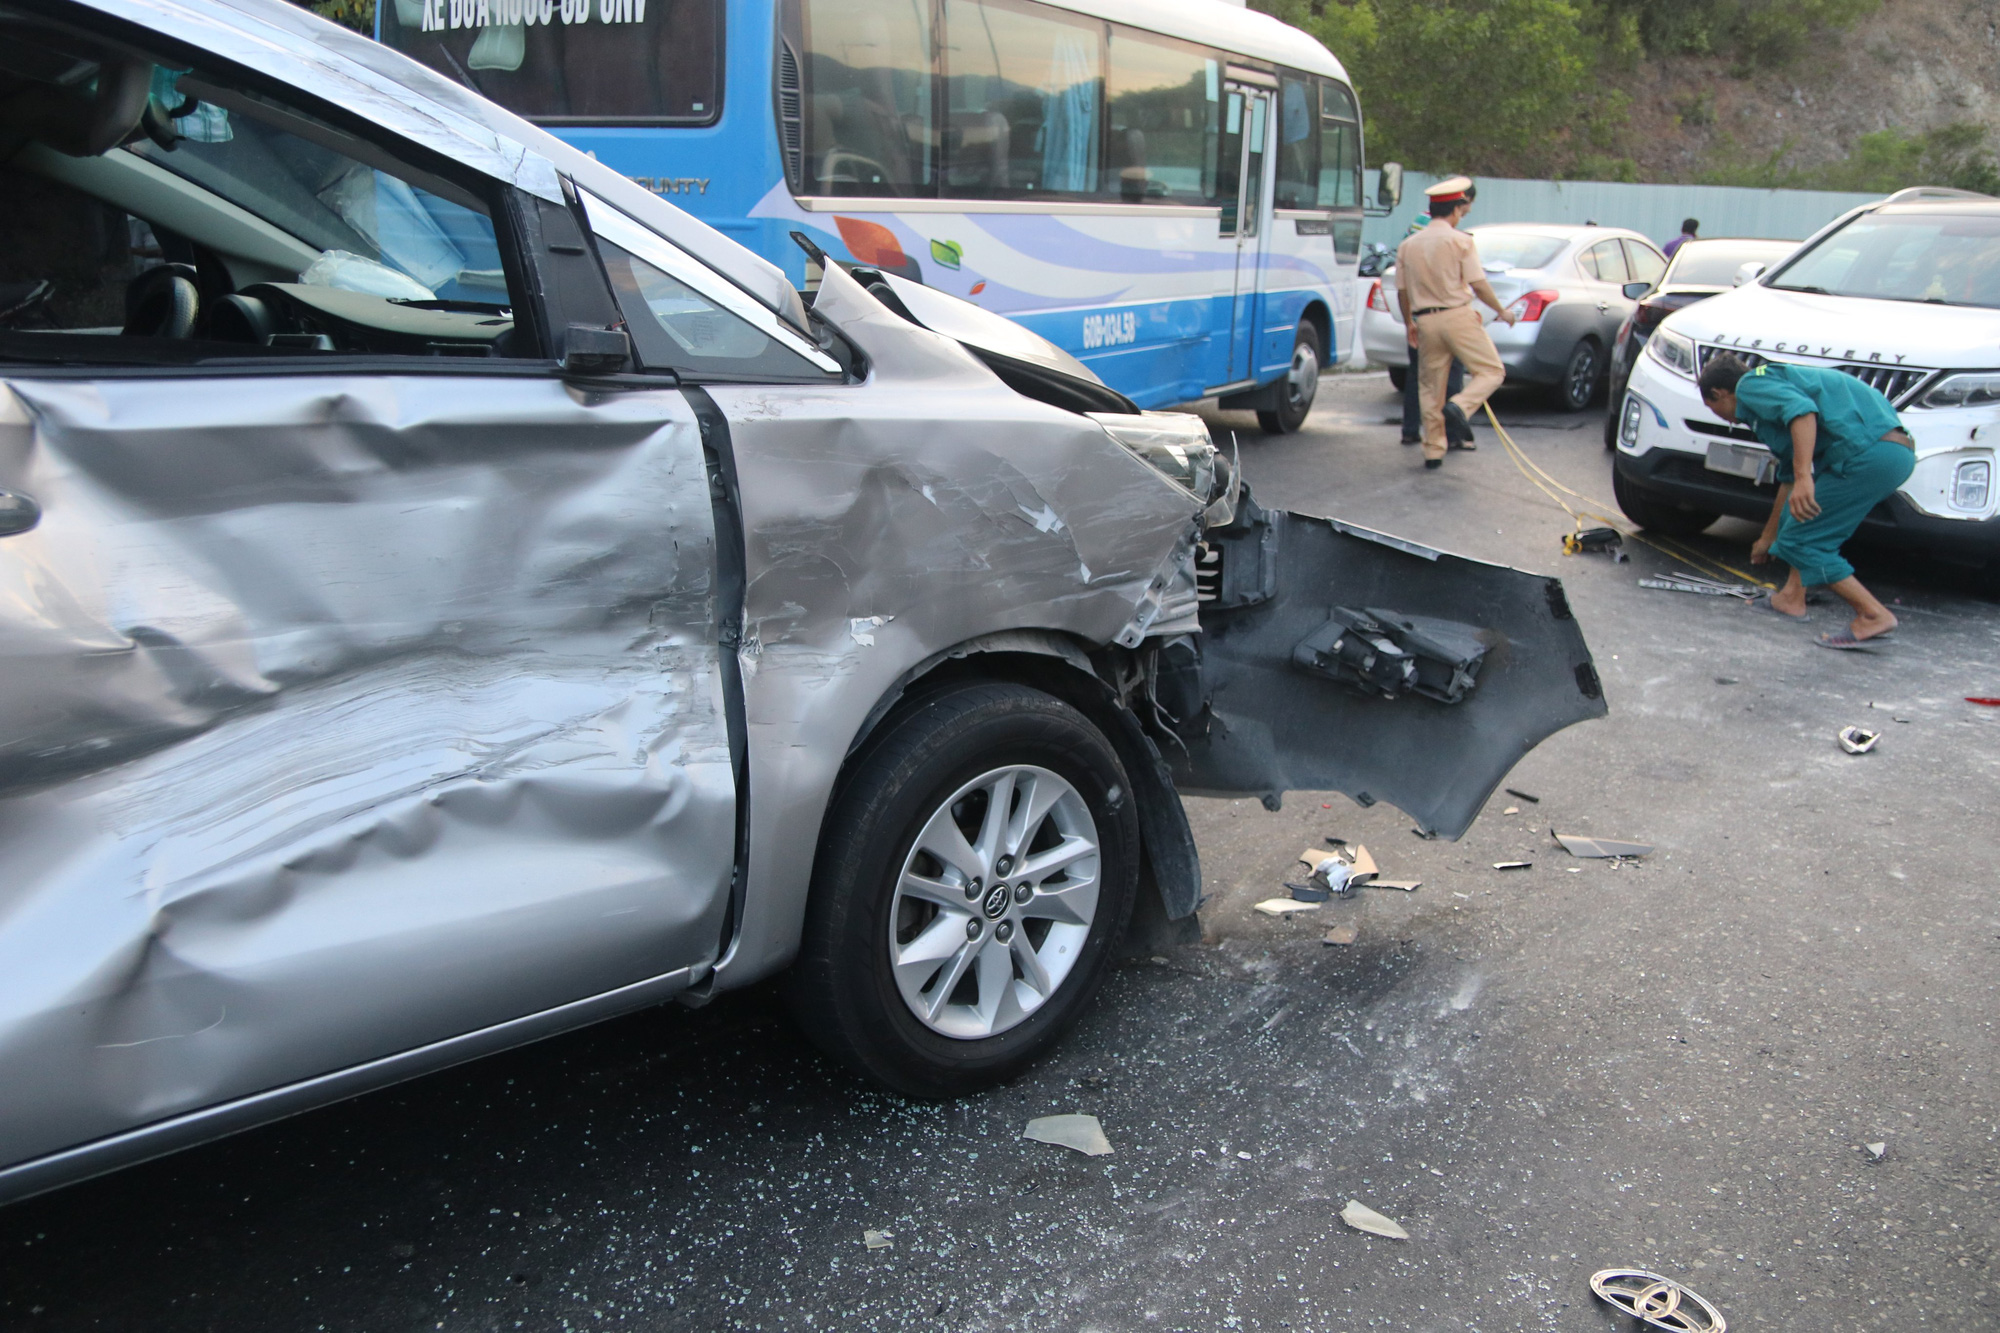 Multiple vehicles are damaged in a pile-up on the Cu Hin mountain pass in Nha Trang City, Khanh Hoa Province, Vietnam, August 30, 2020. Photo: Phan Song Ngan / Tuoi Tre